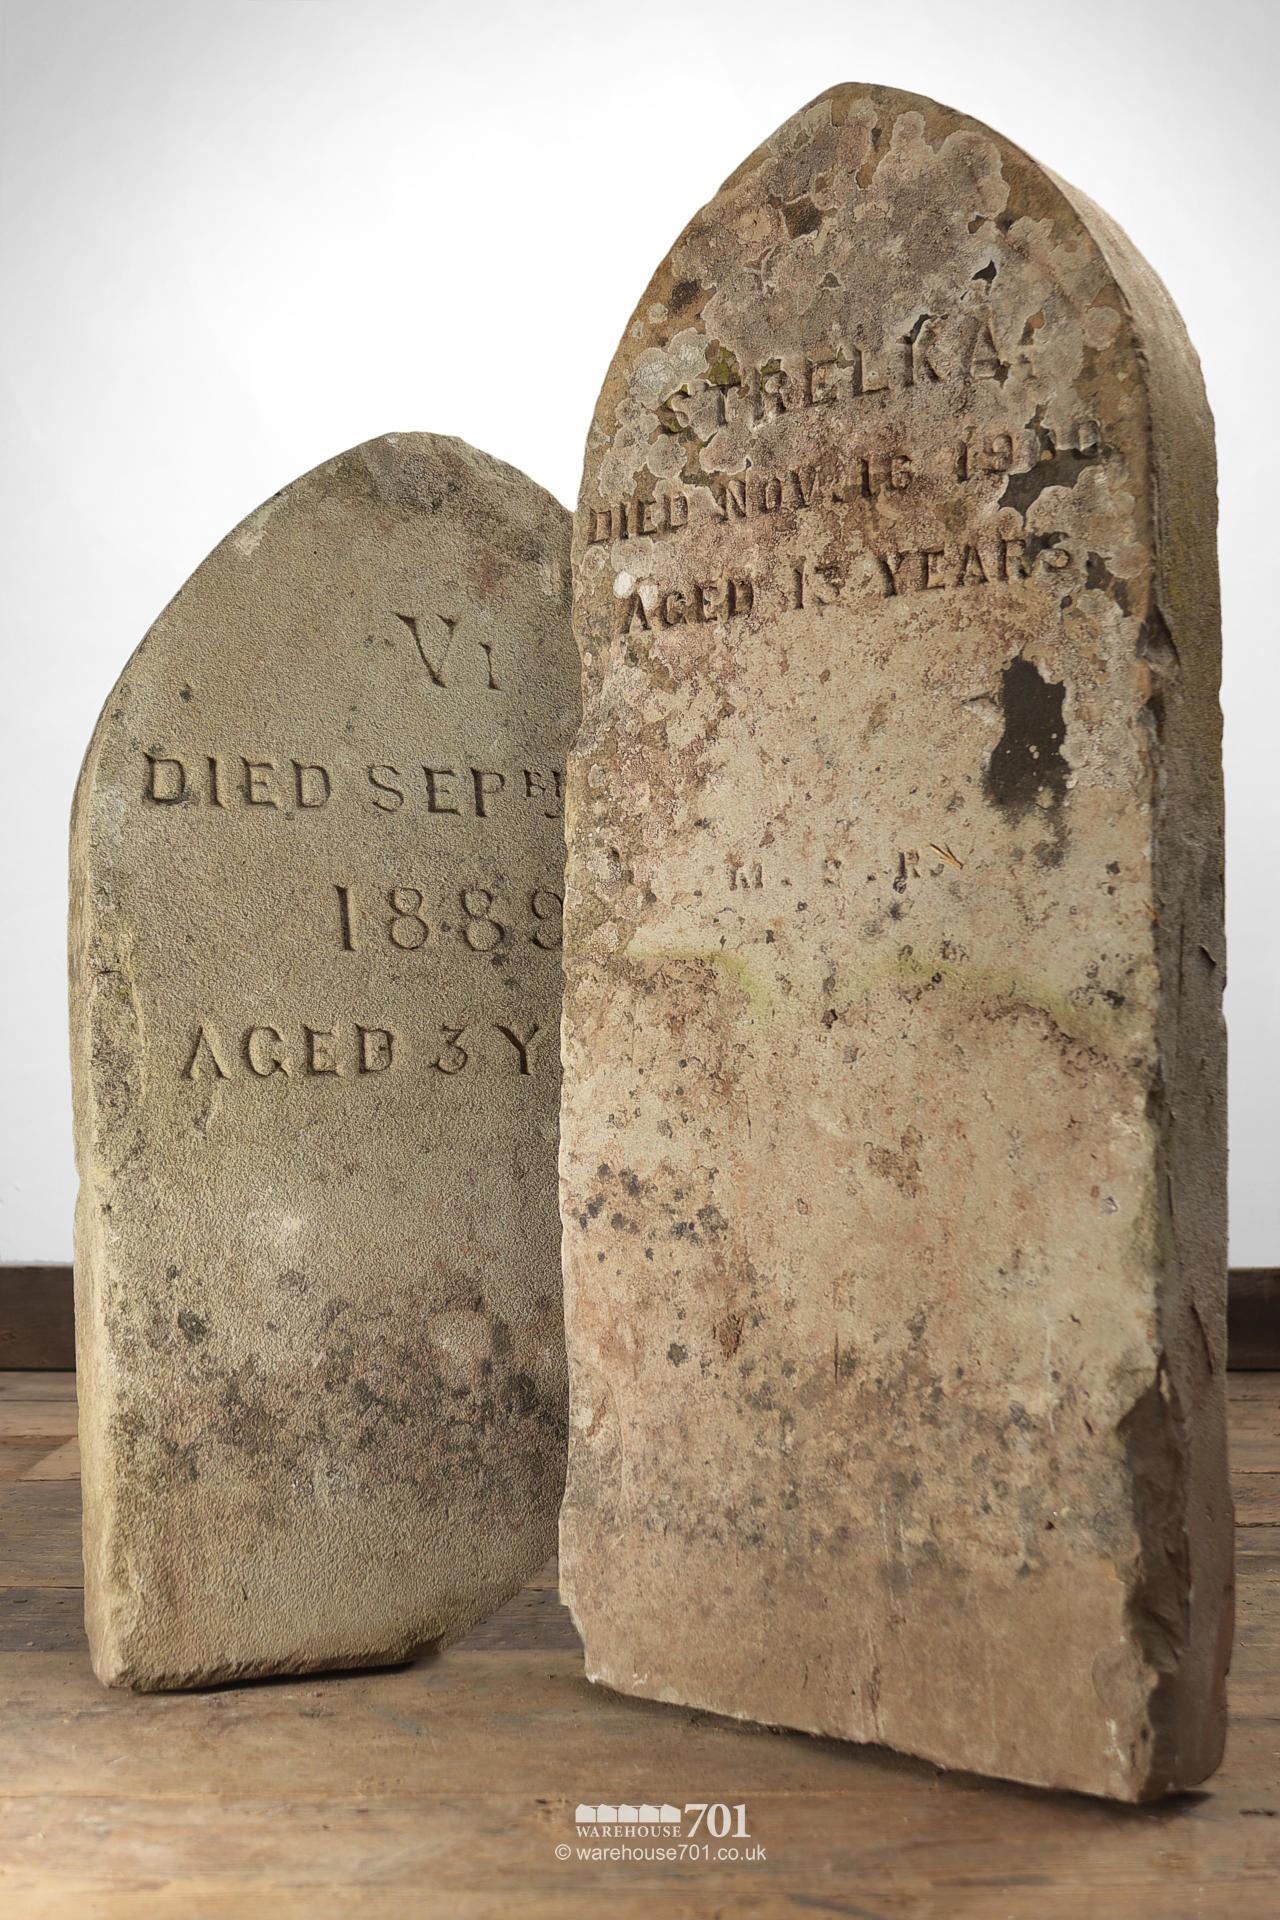 Old Pet Cemetery Hand-Carved Headstone Grave Markers #2